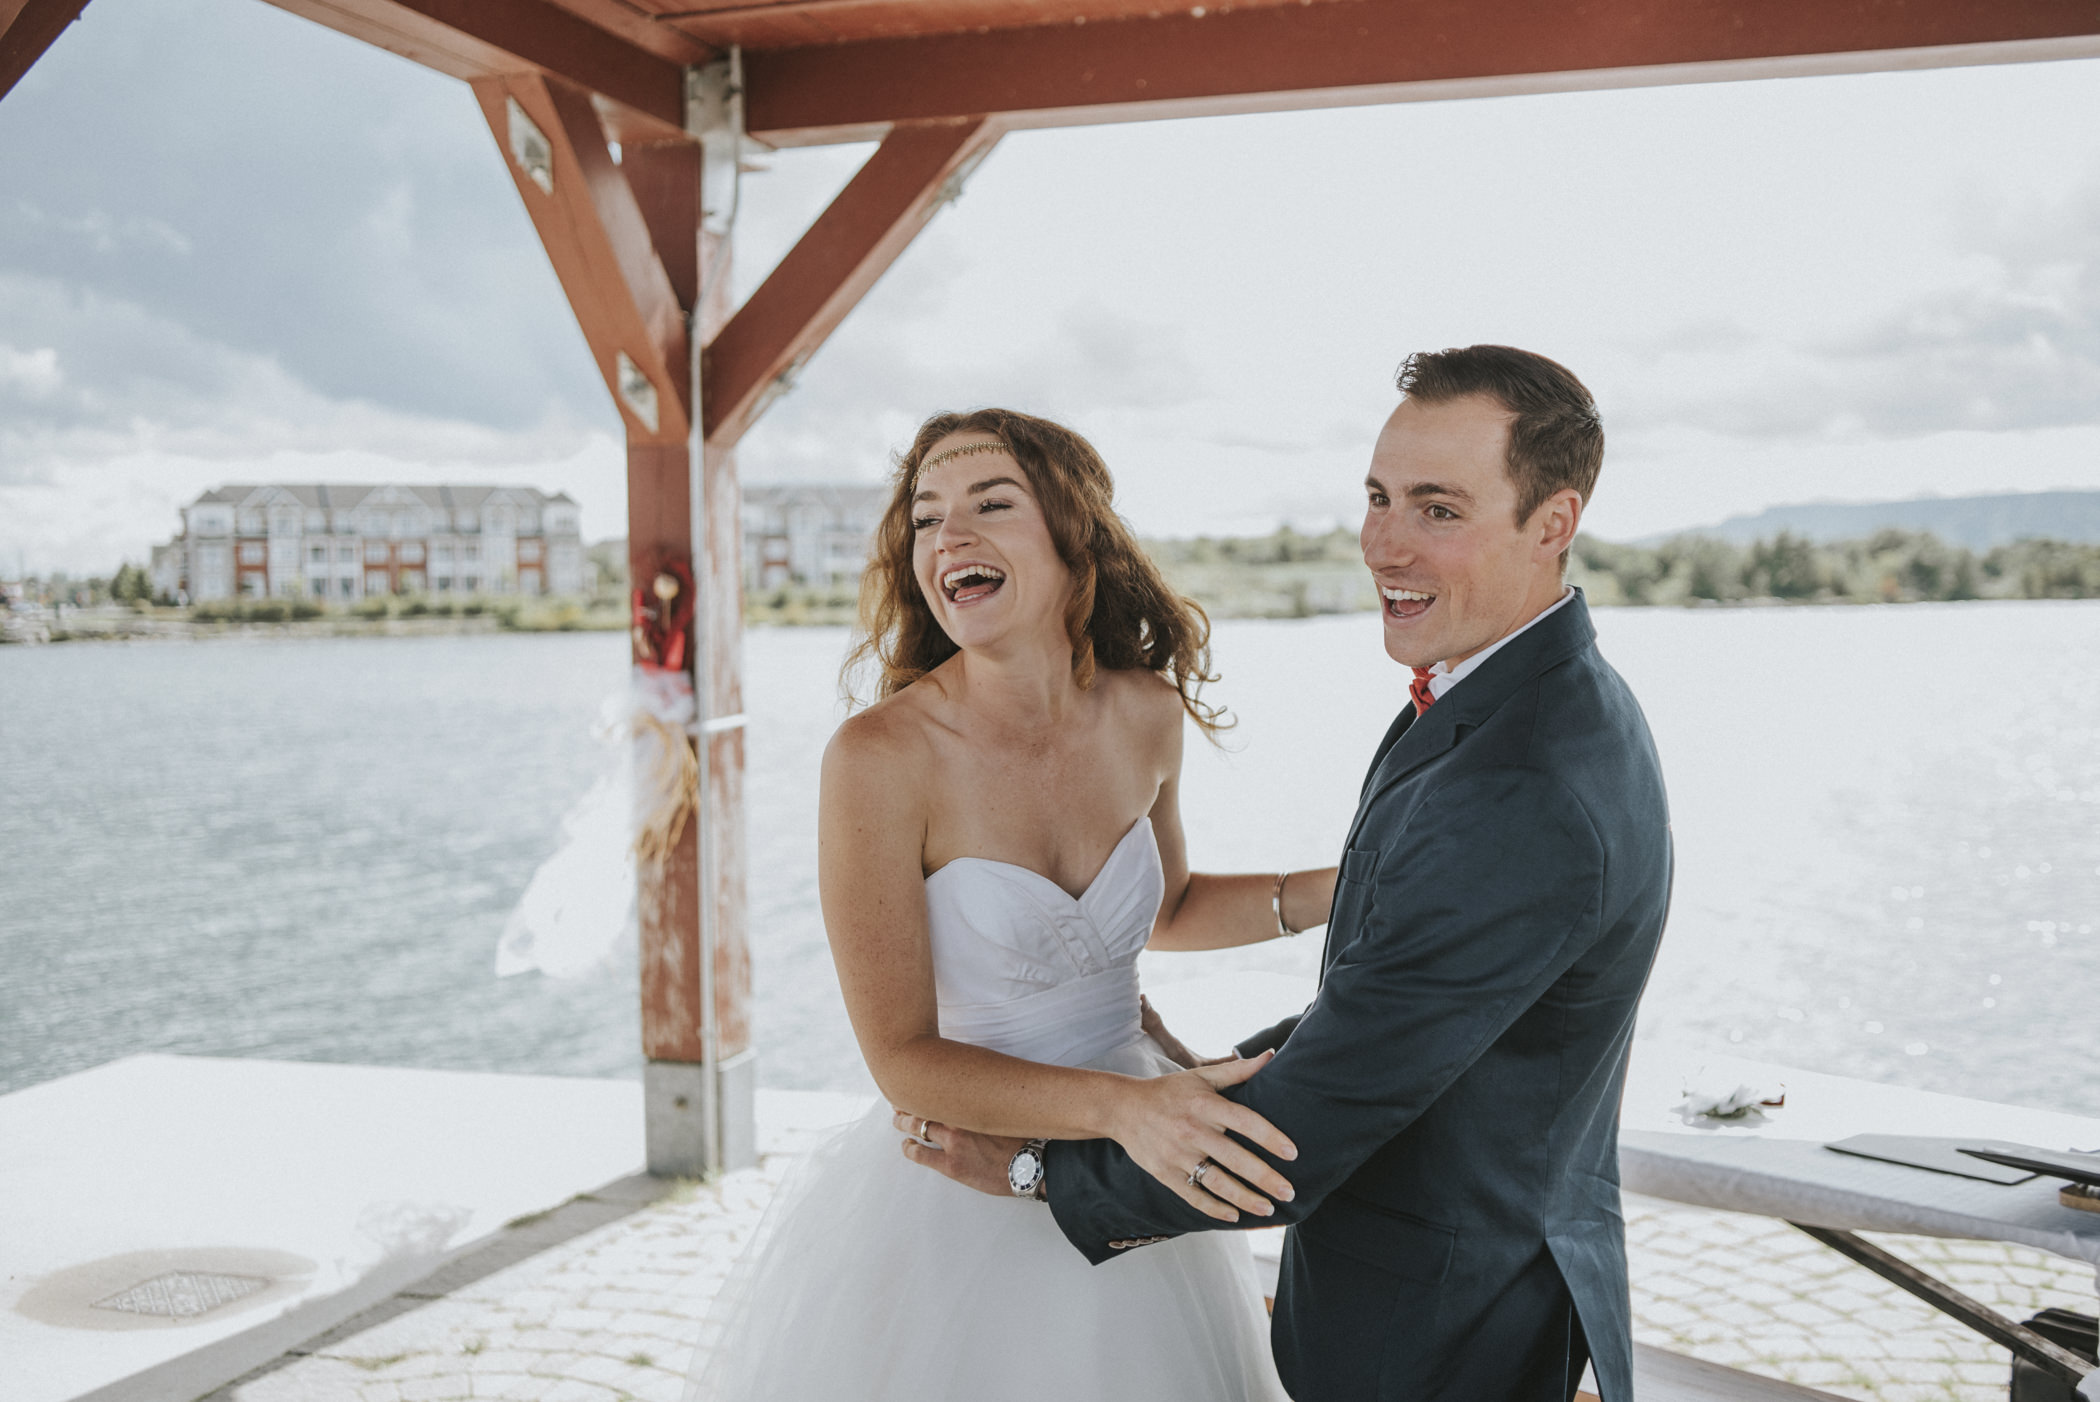 Bride and groom laughing after first kiss.